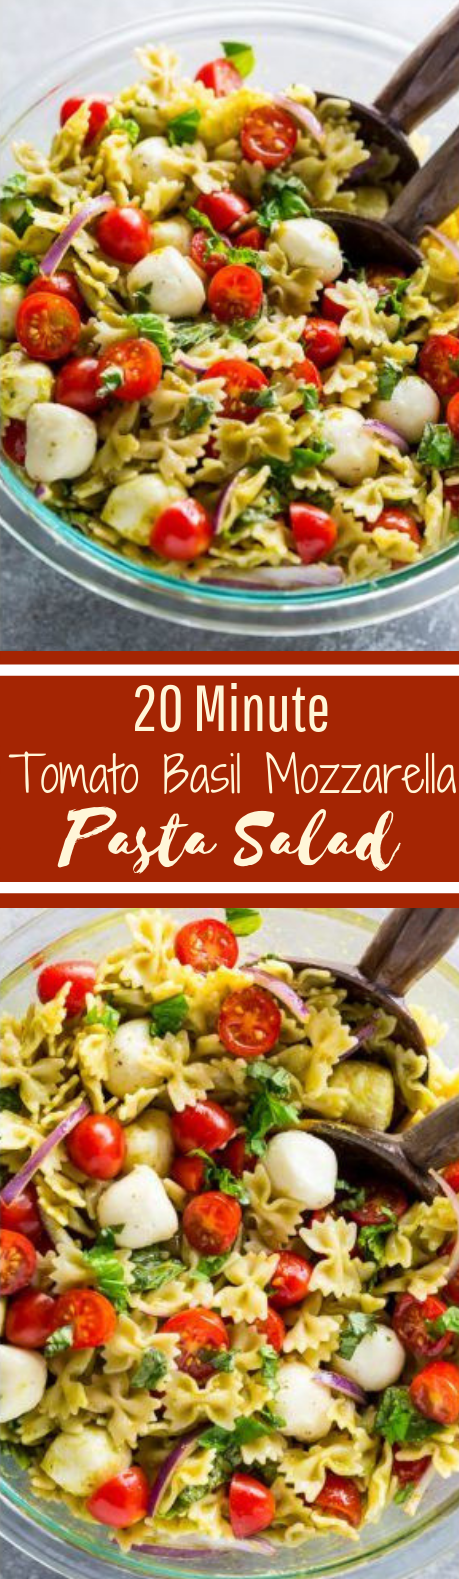 20-Minute Tomato, Basil, and Mozzarella Pasta Salad #healthy #salad